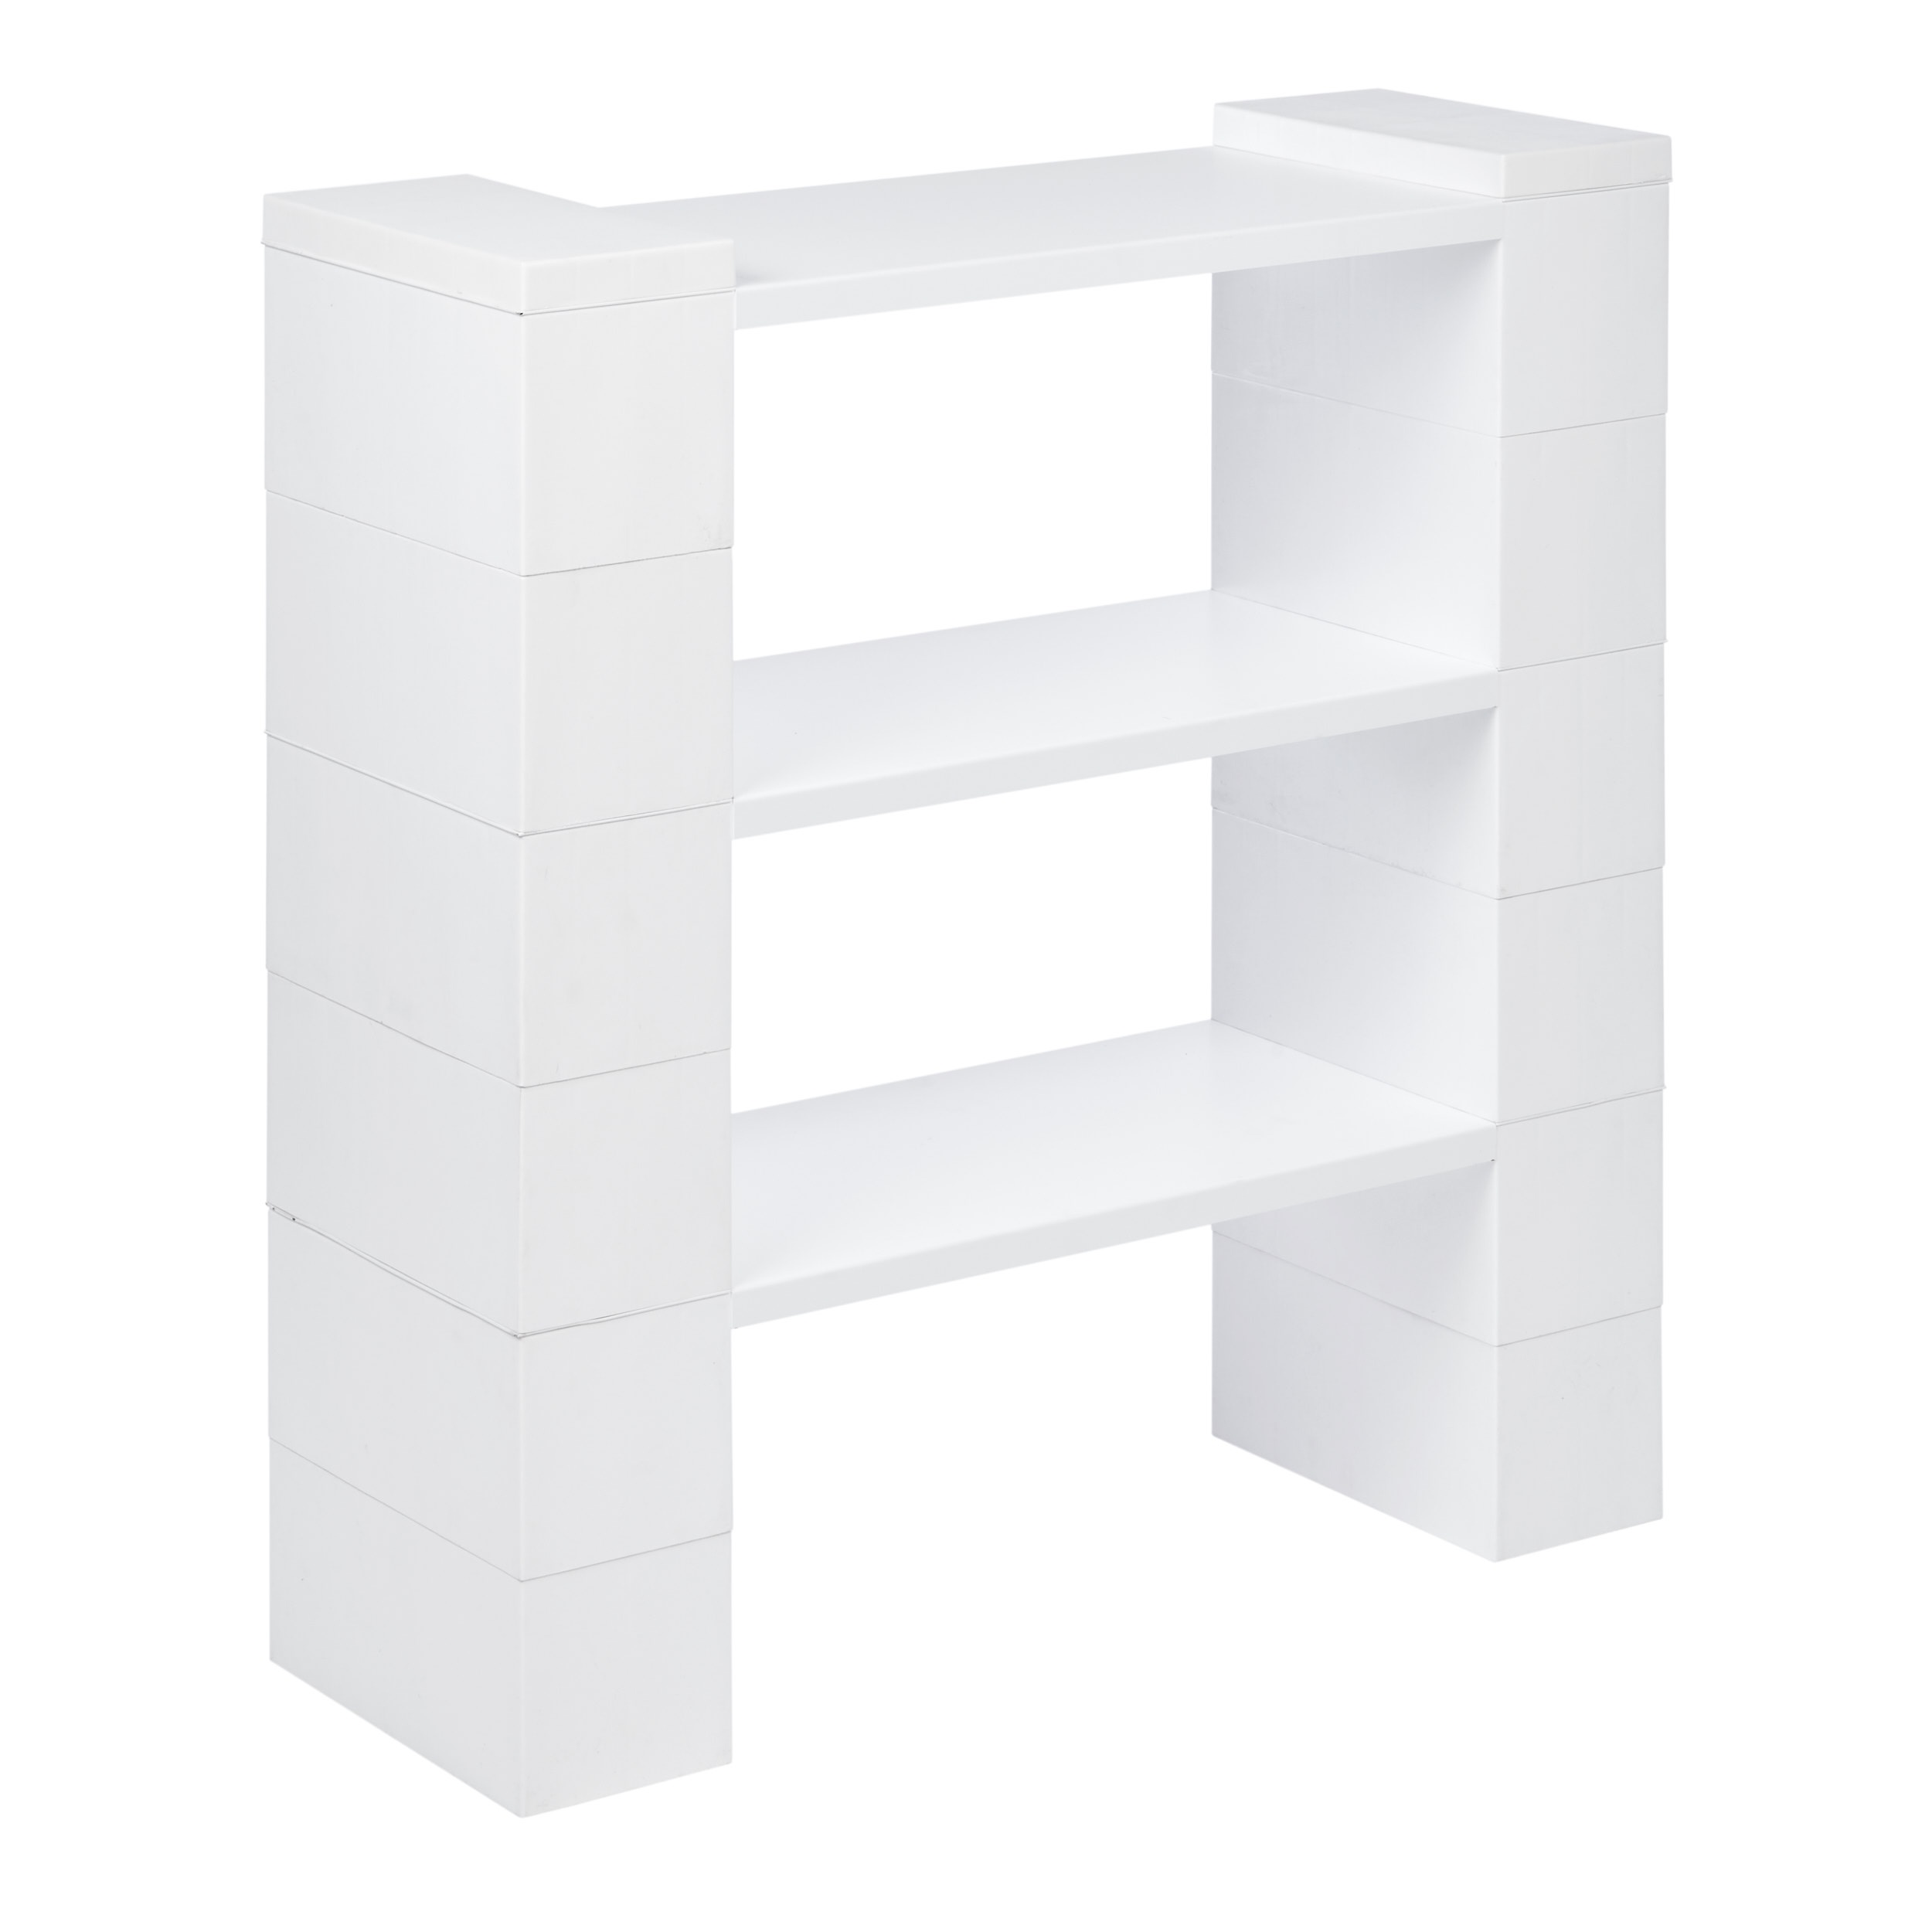 "3 Level, 36""W EverBlock Shelving Kit"